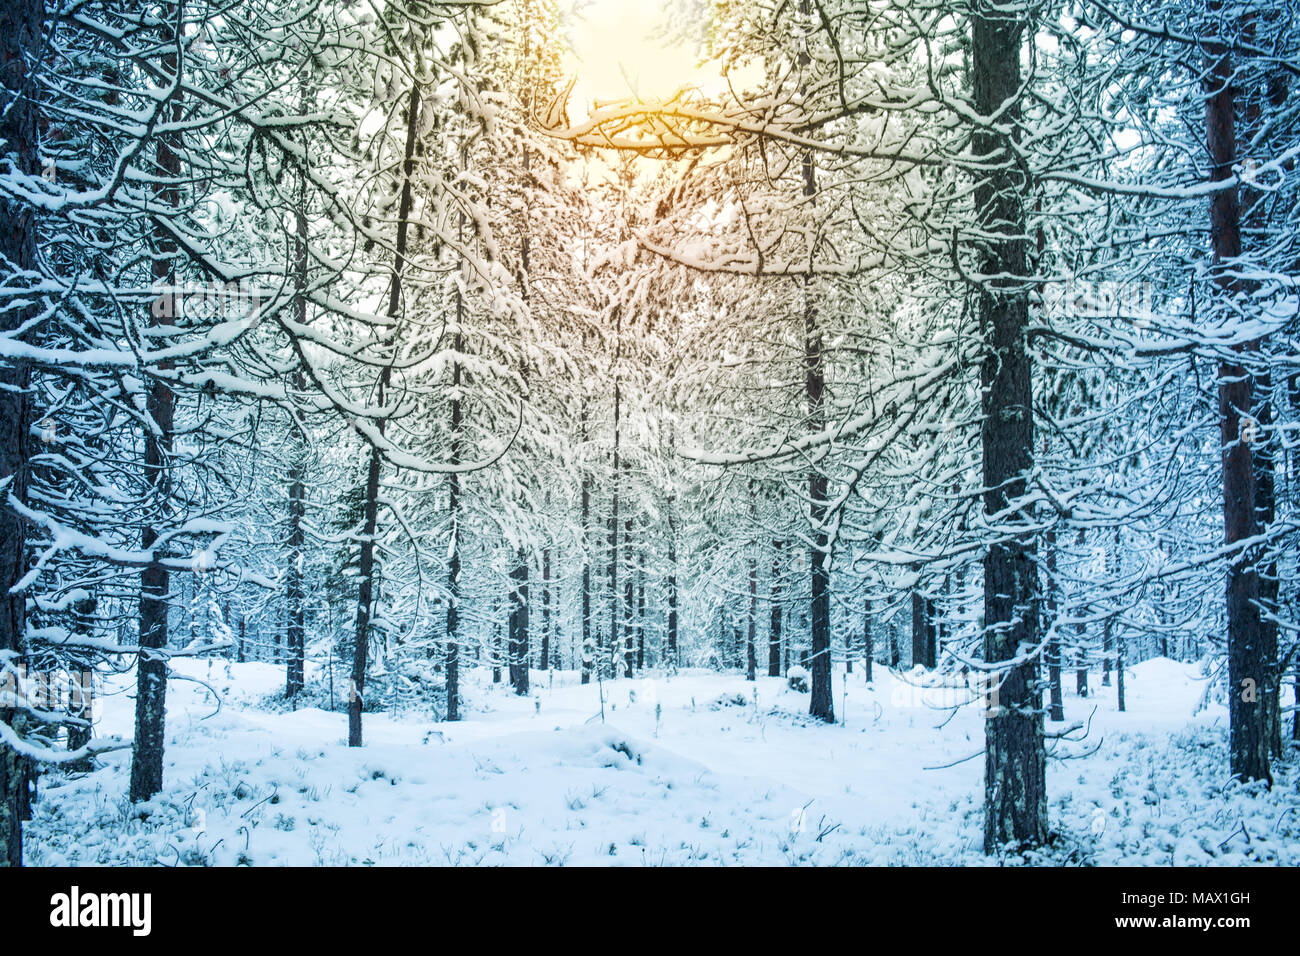 Beautiful Snowy Day With Sunlight In A Forest During Winter In Lapland Finland Christmas Greeting Card Background - Stock Image